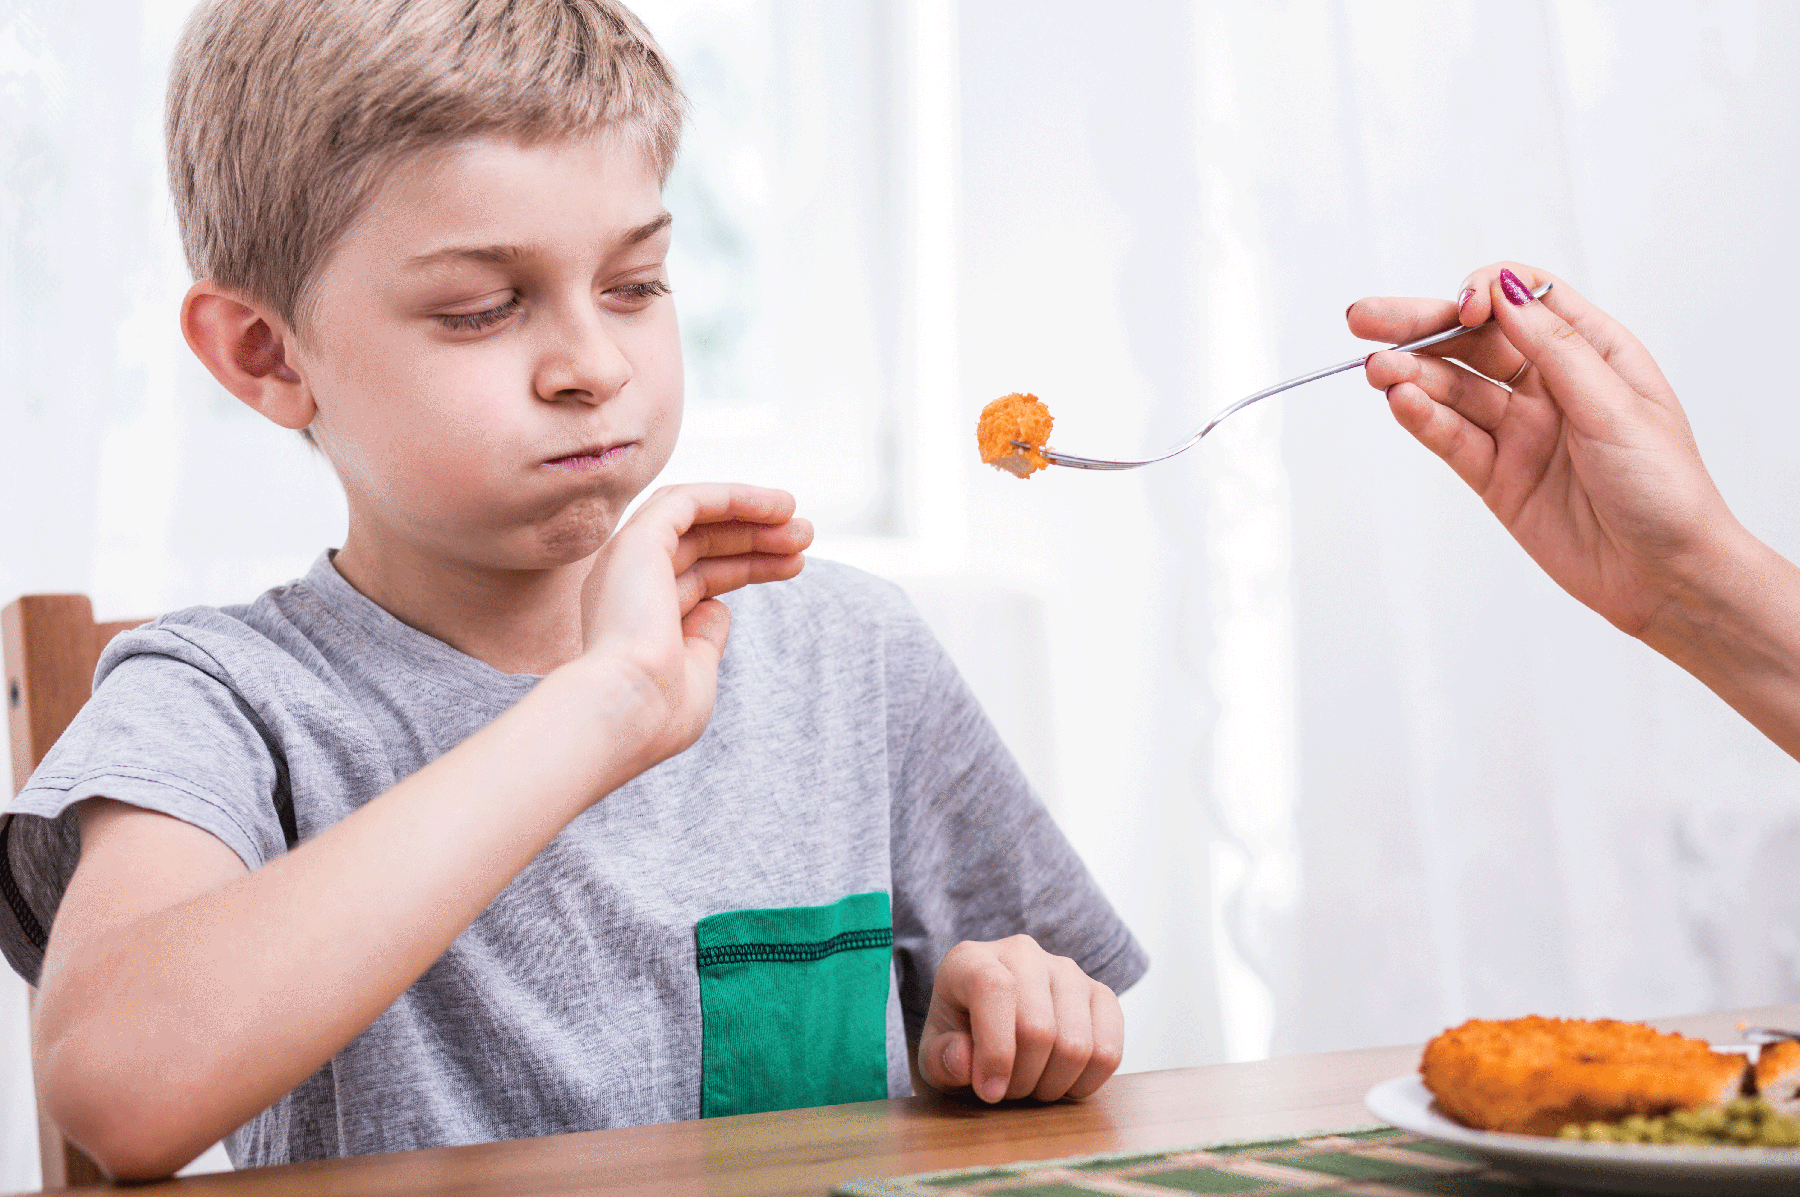 How We're Accidentally Teaching Our Kids Bad Eating Habits